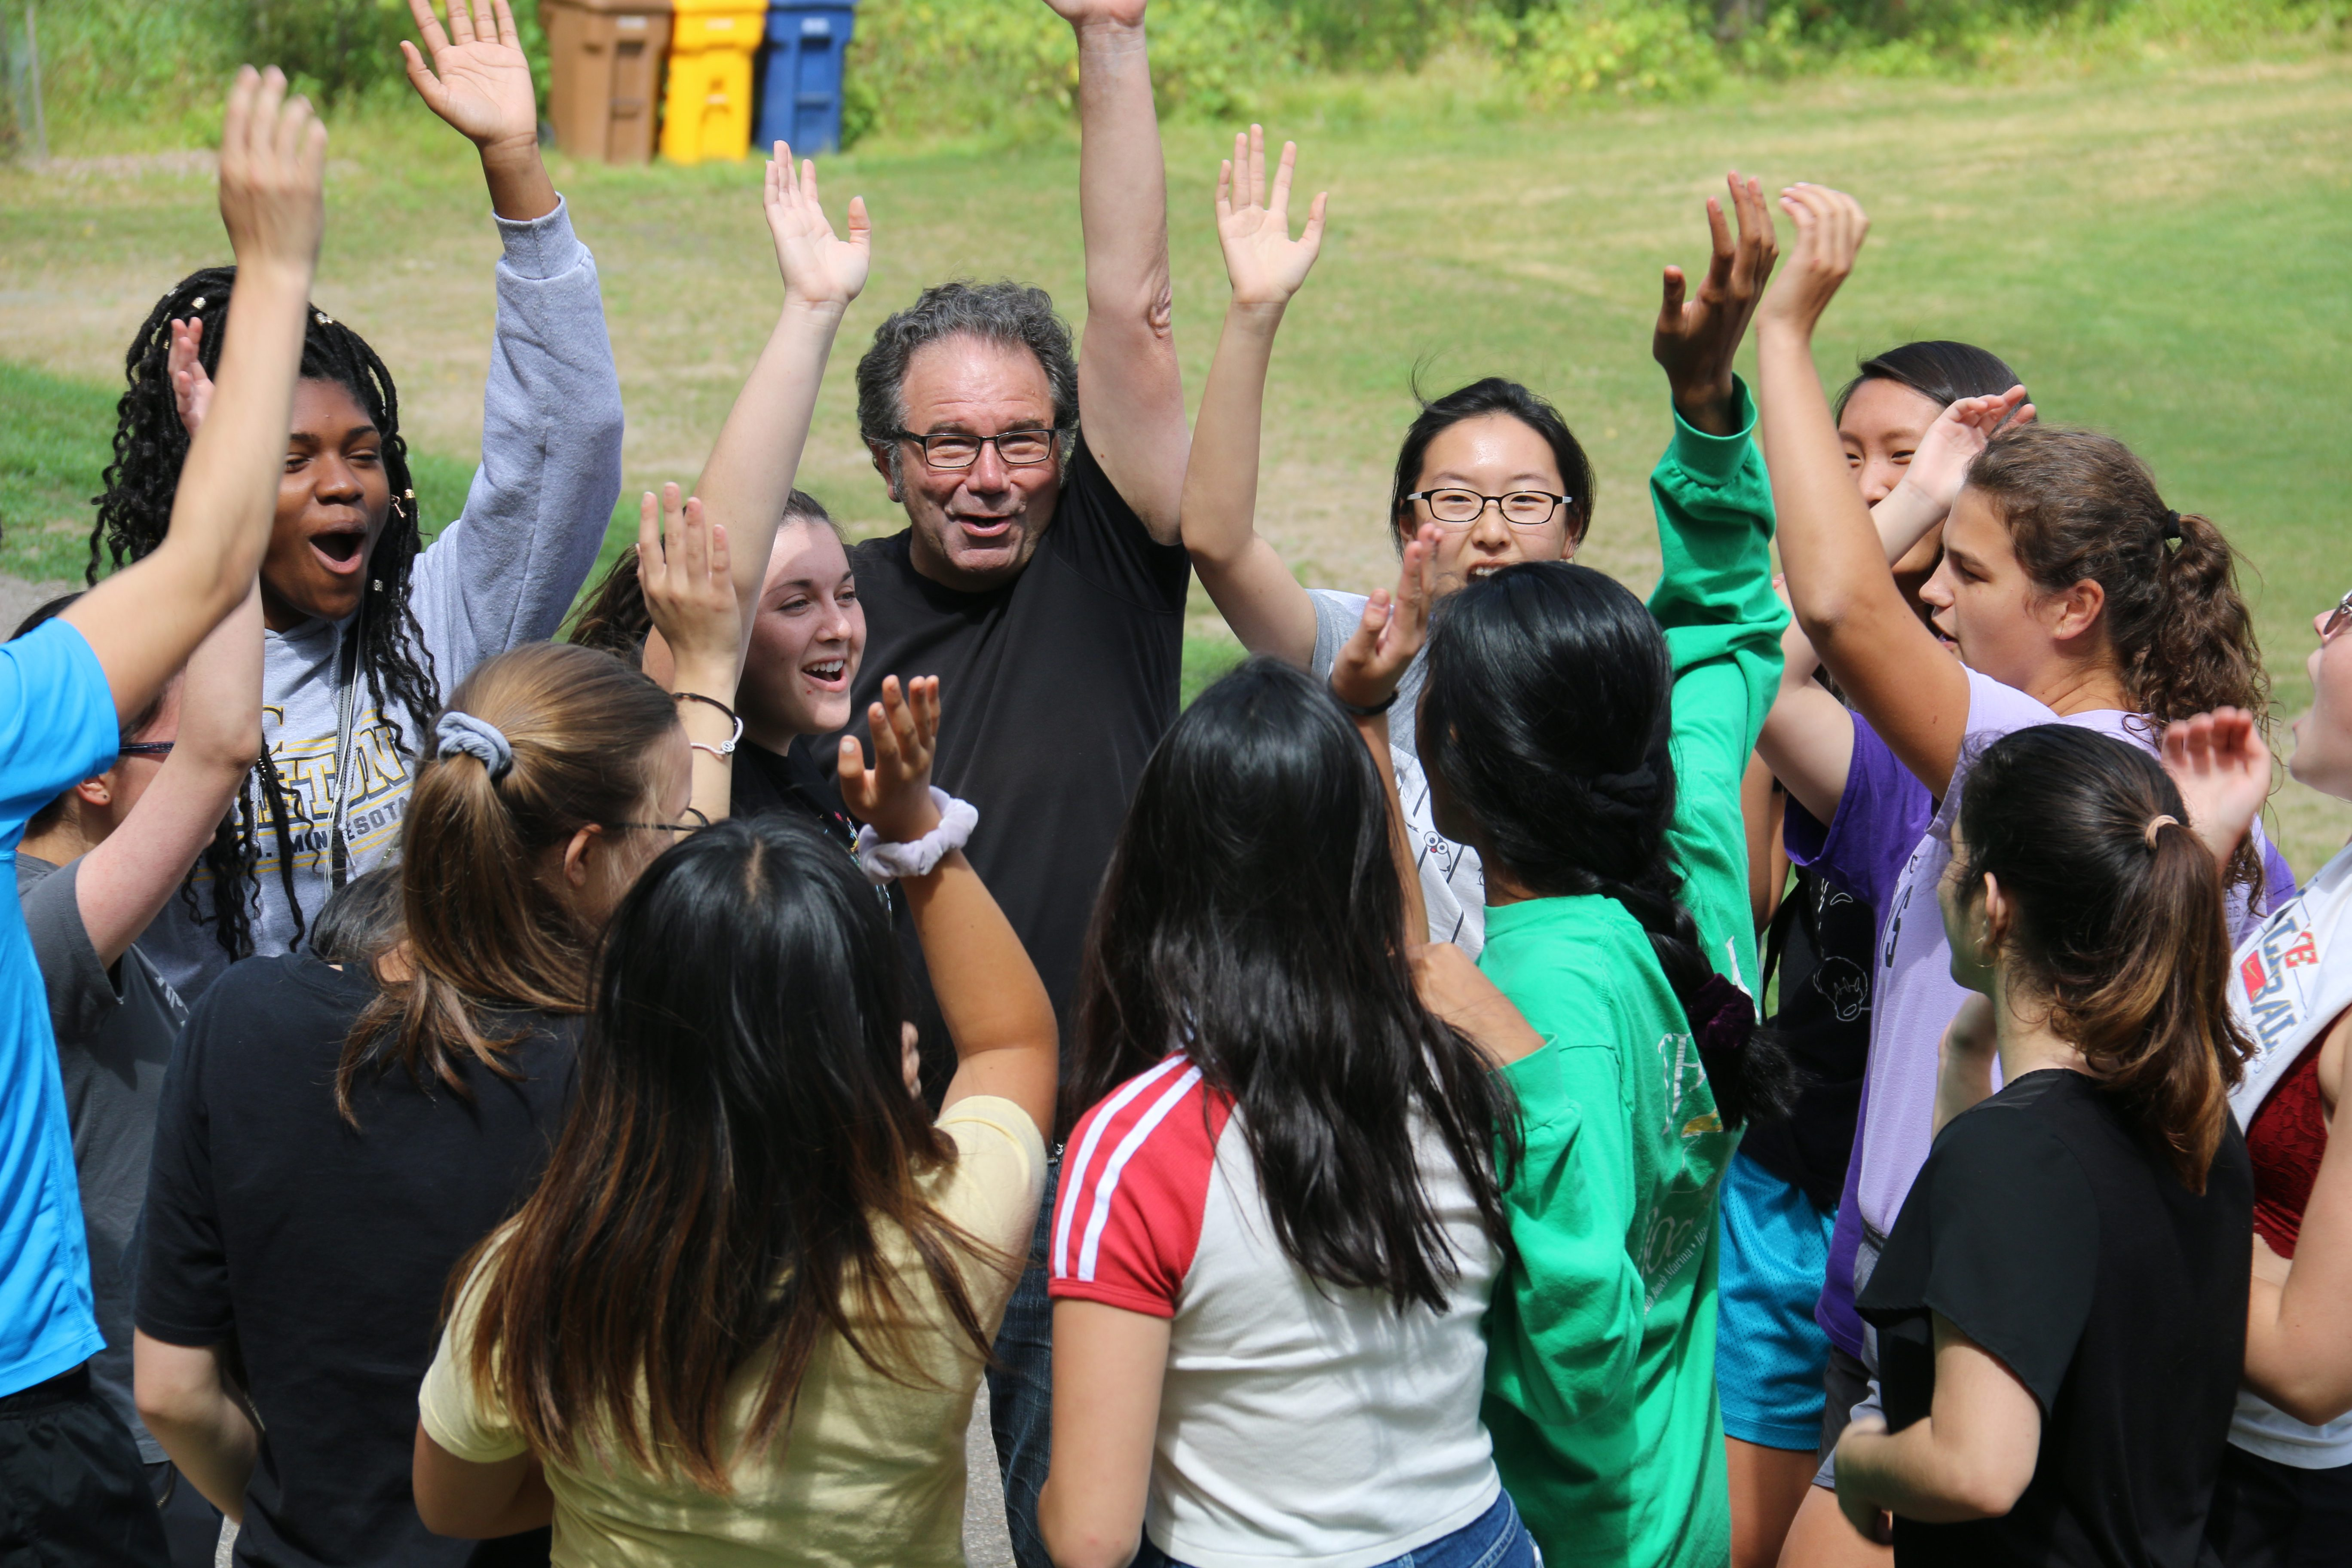 Students and teacher with their hands in the air